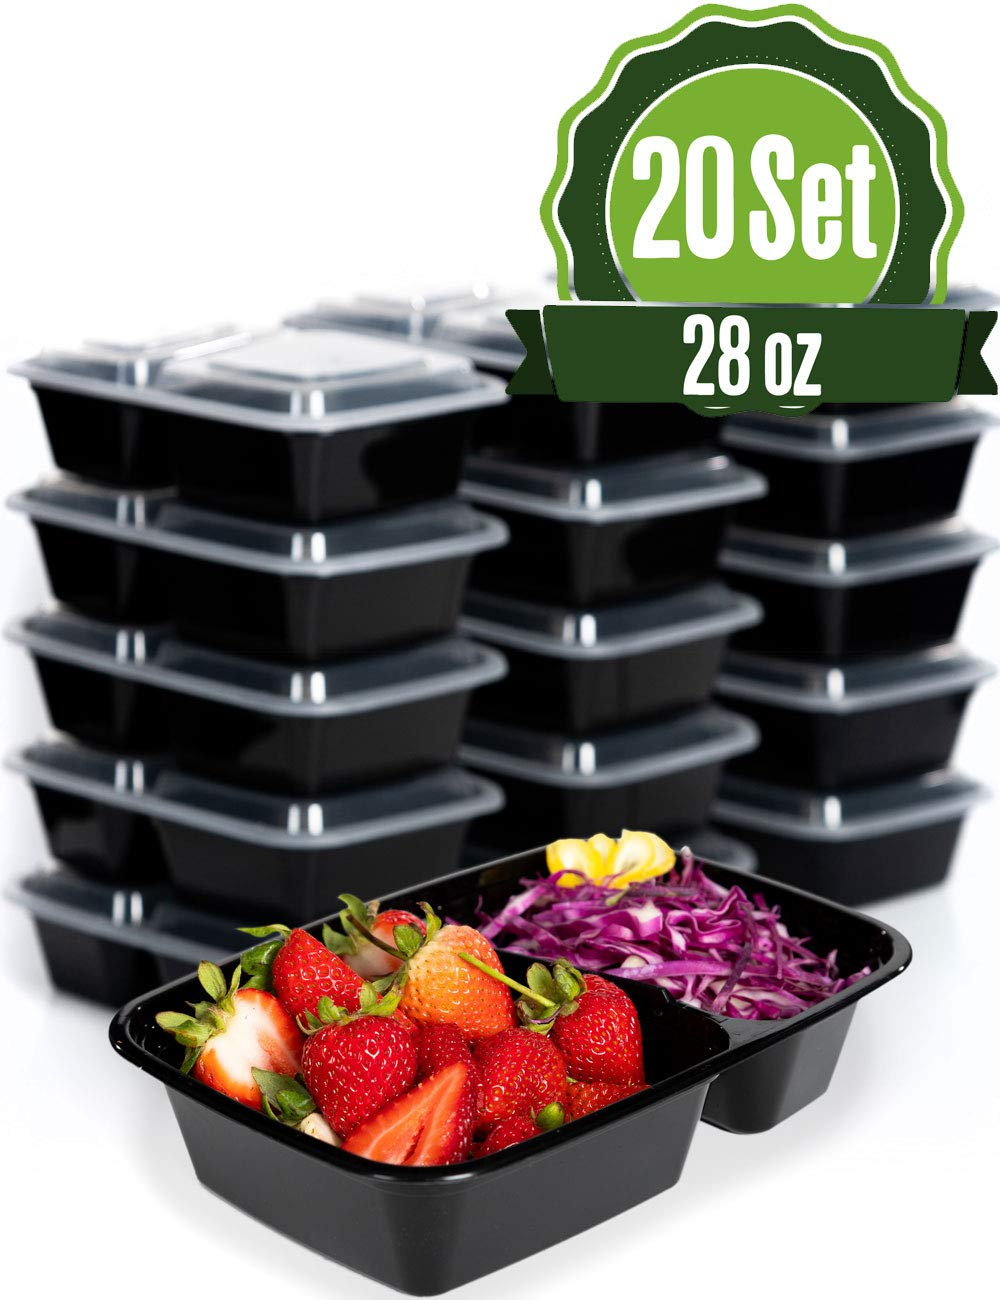 Meal Prep Food Storage Containers with Lids, 2 Compartment 28 oz (20 Set) - BPA Free, Lunch Portion Control, Dishwasher, Freezer Safe, Microwavable, Reusable or Disposable Plastic Bento boxes